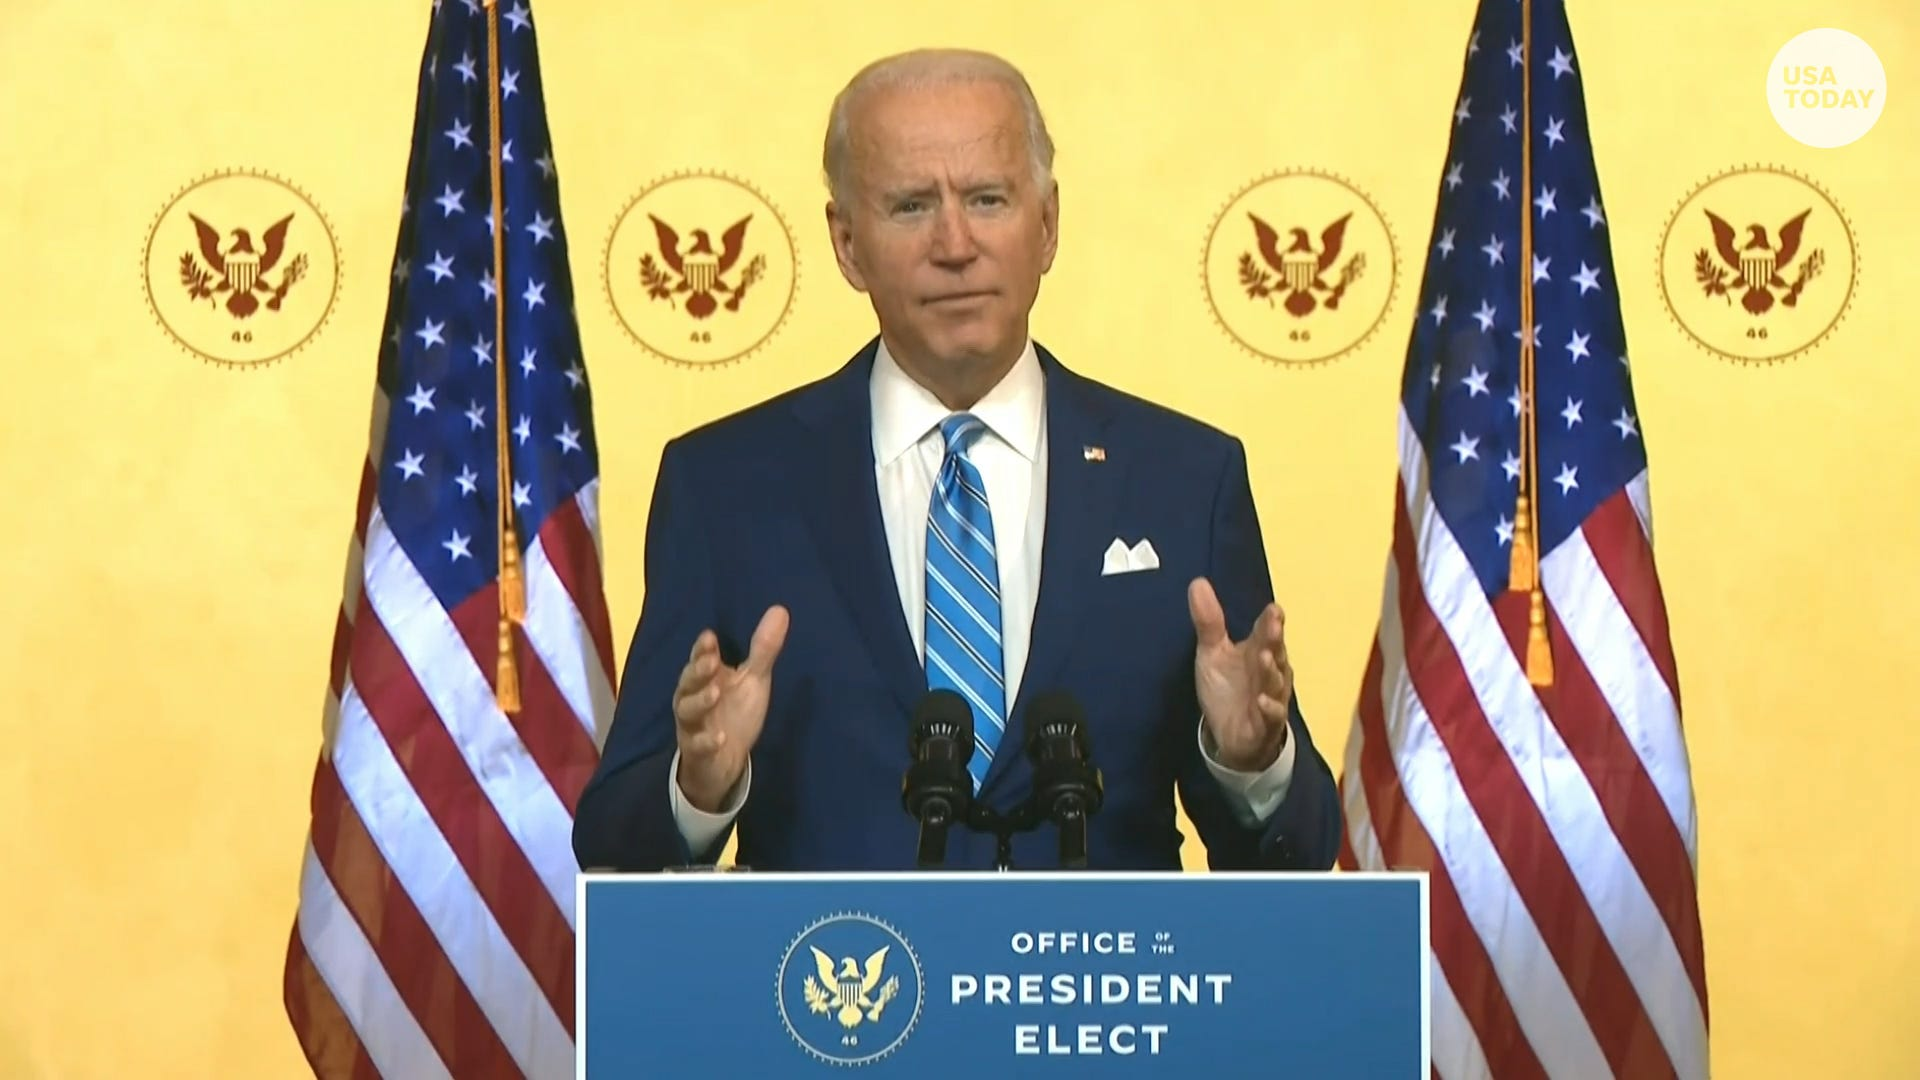 President-elect Biden says his family will have a 'separate Thanksgiving' due to COVID-19